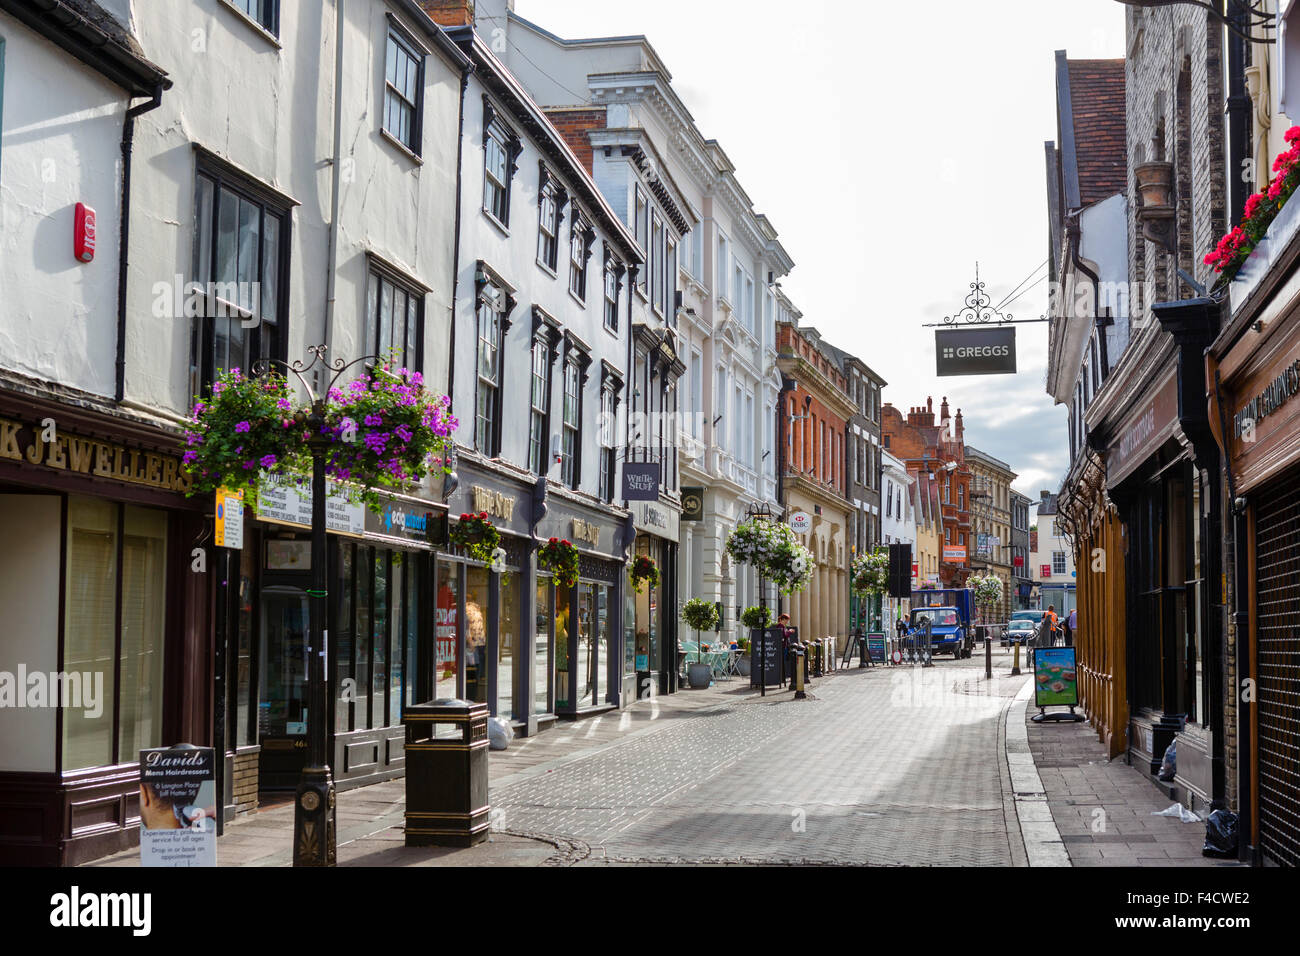 Shops on Abeygate Street in the town centre, Bury St Edmunds, Suffolk, England, UK - Stock Image